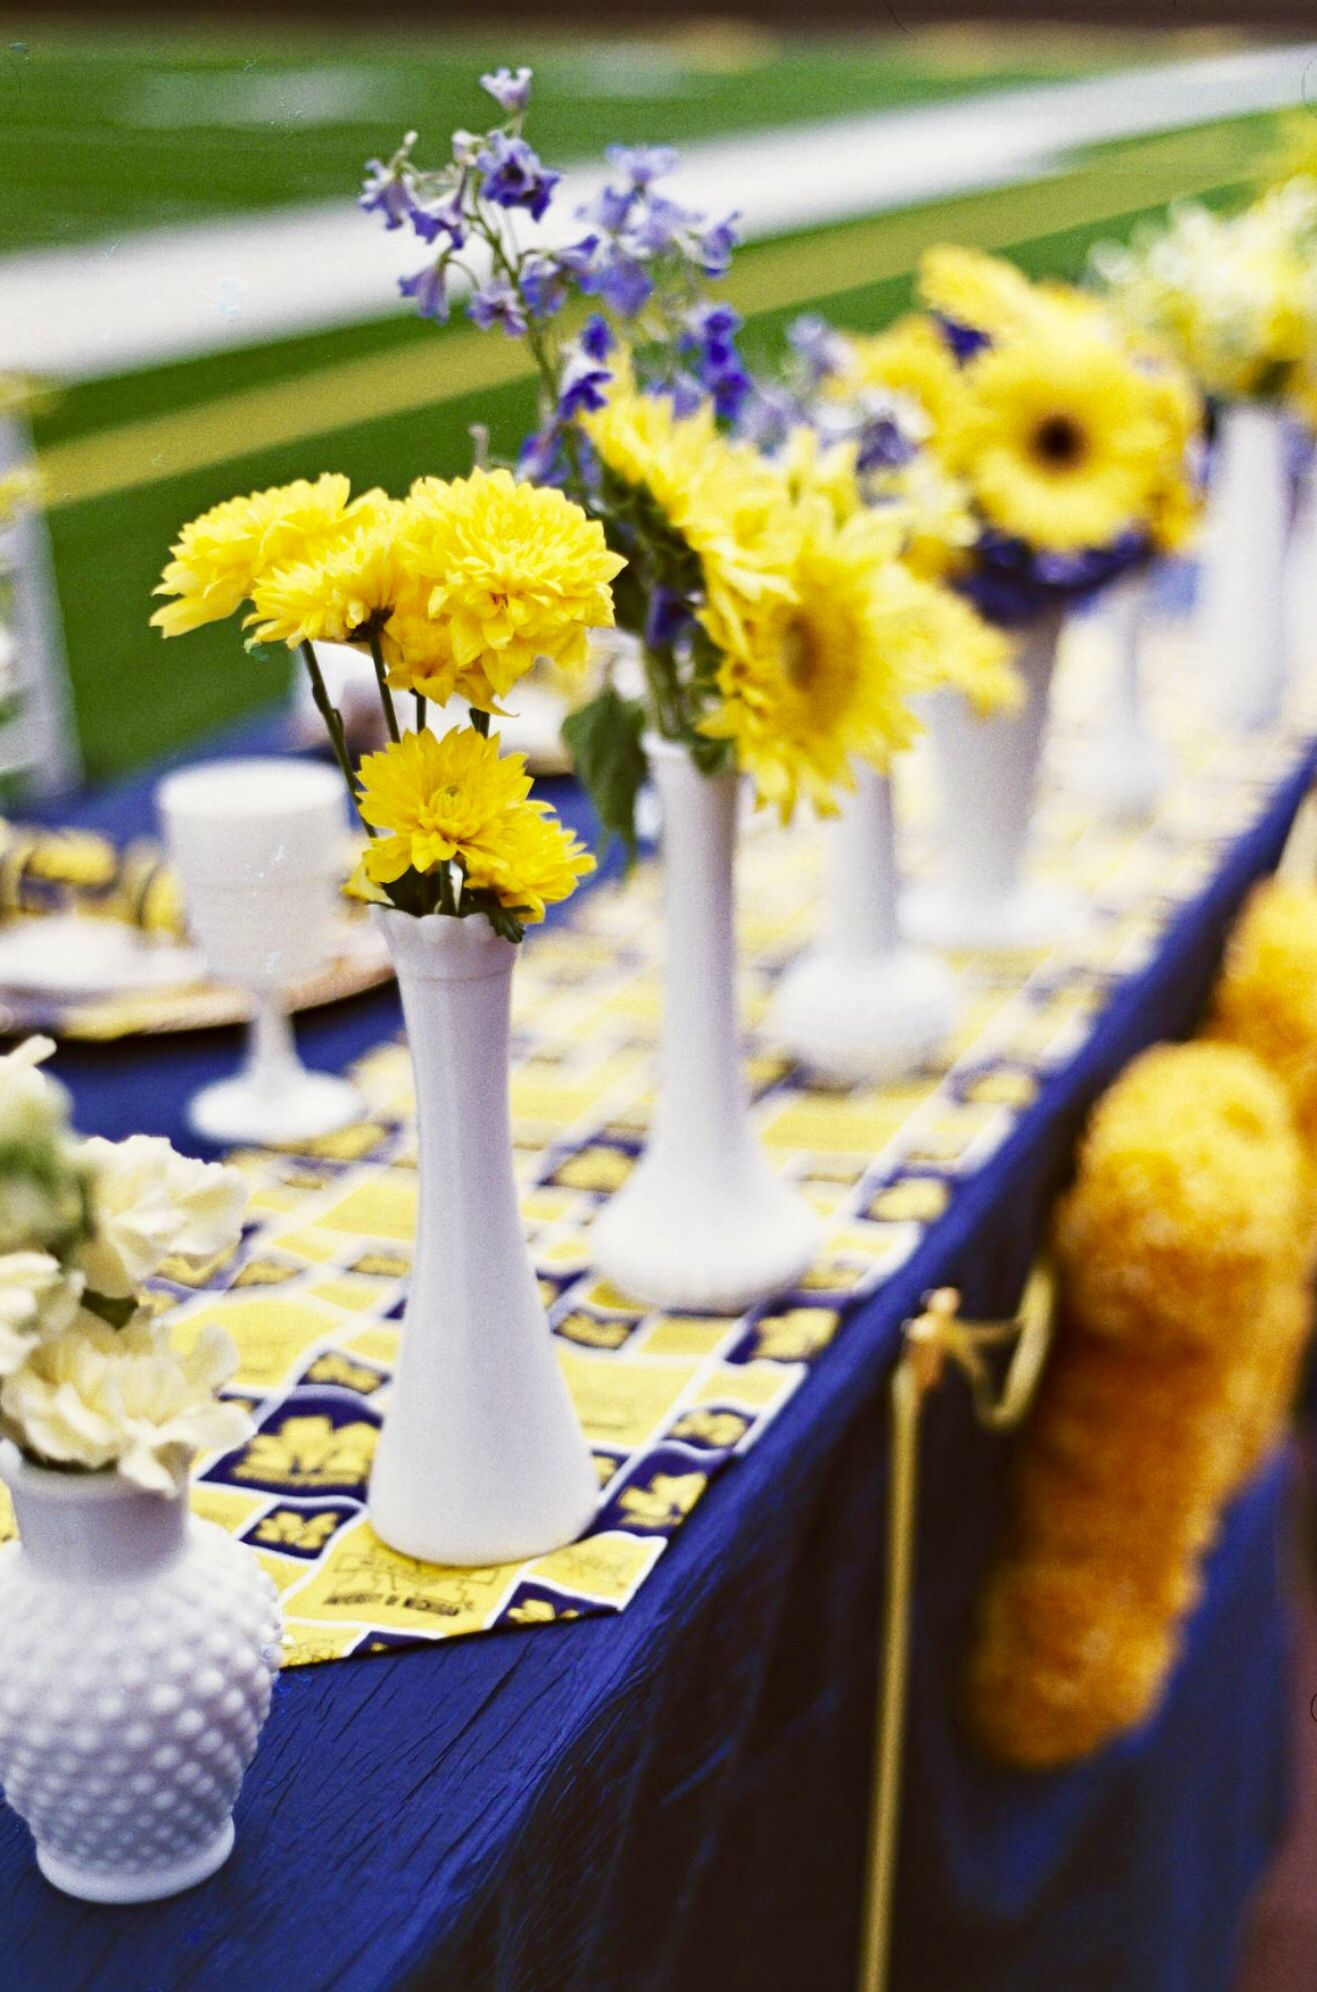 Football Themed Co Ed Wedding Shower At The University Of Michigan